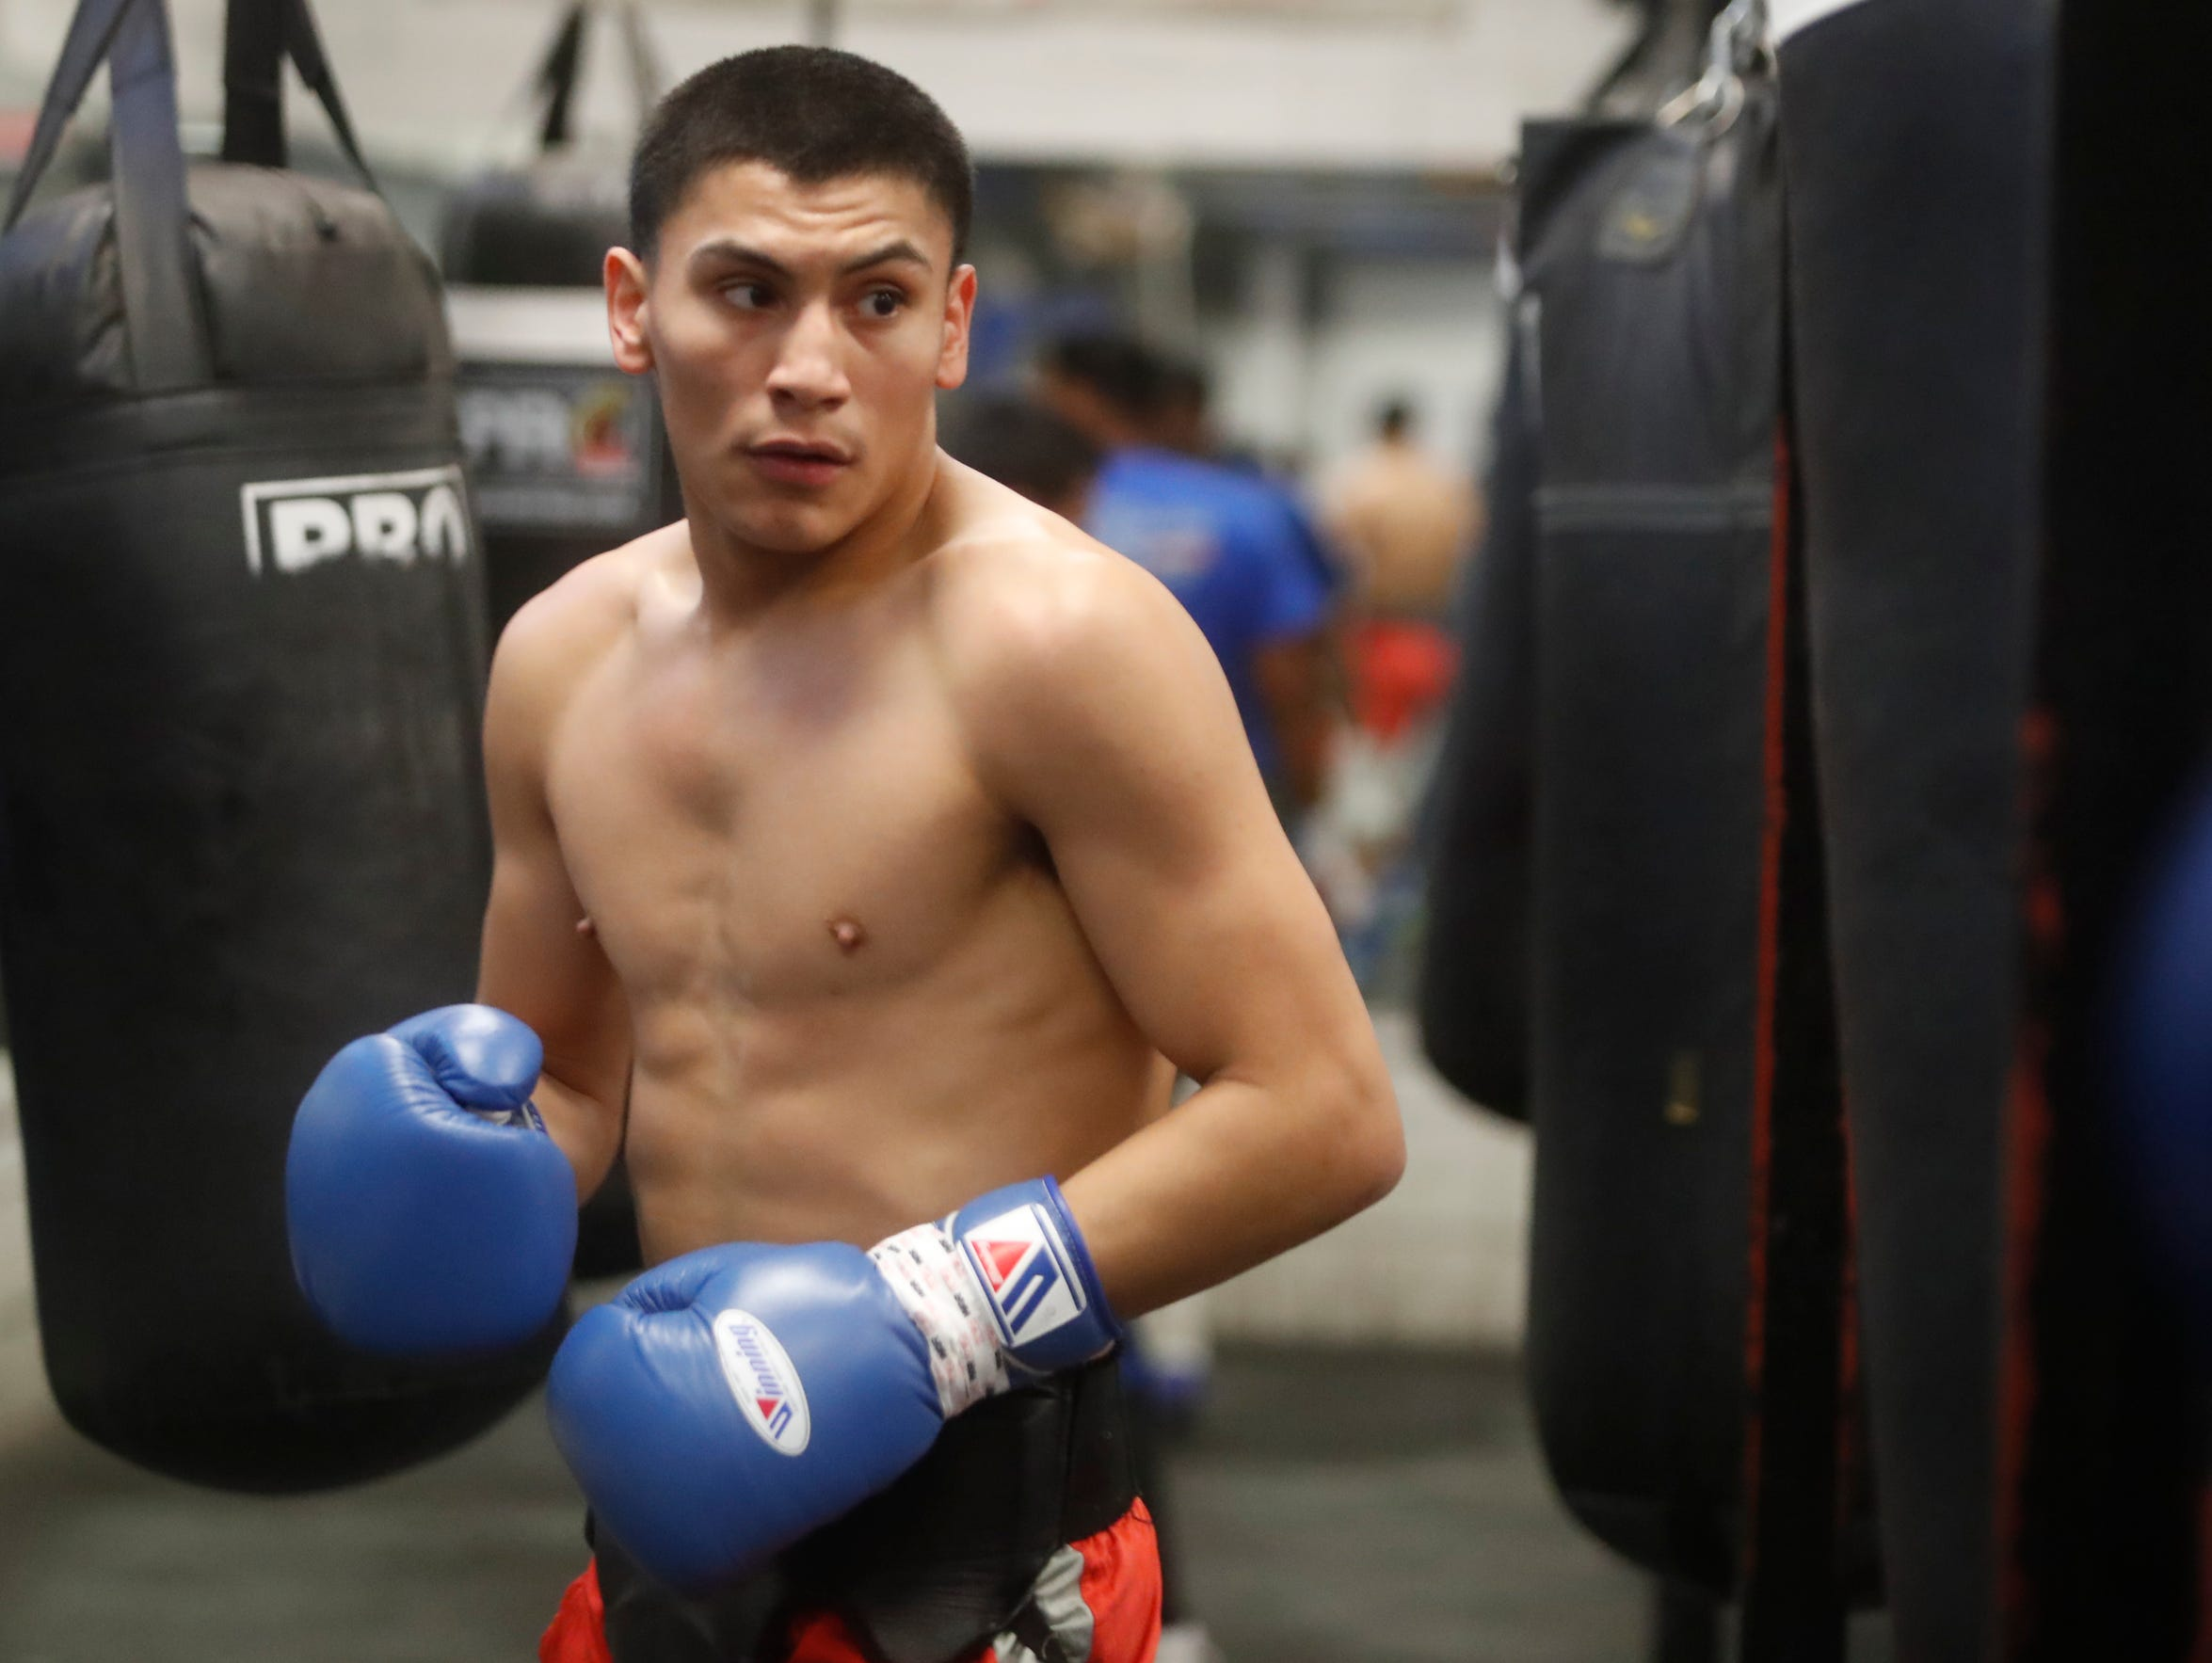 Vergil Ortiz, 19, is a prospect in the world of elite